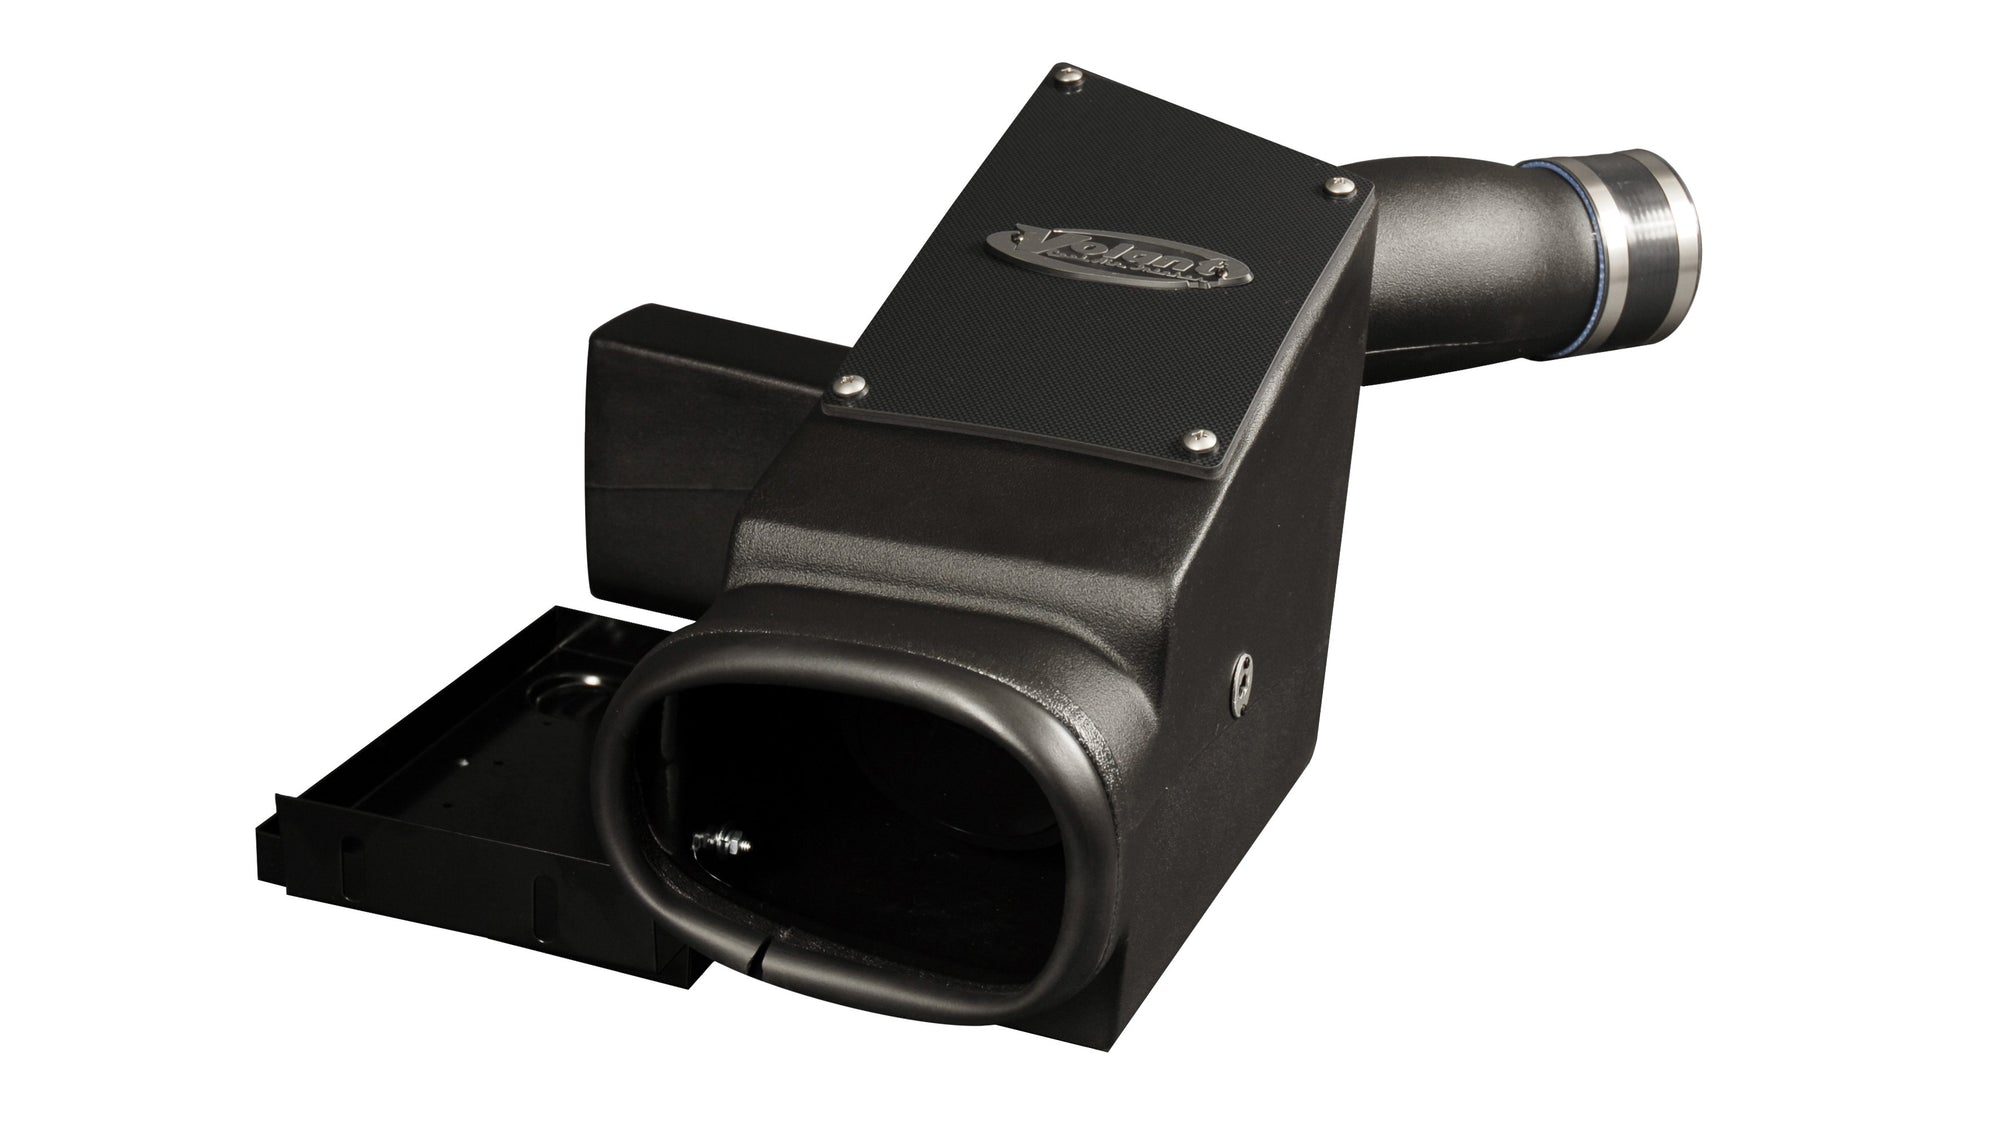 1999-2003 Ford F-550 Super Duty 7.3L V8 Closed Box Air Intake 19873